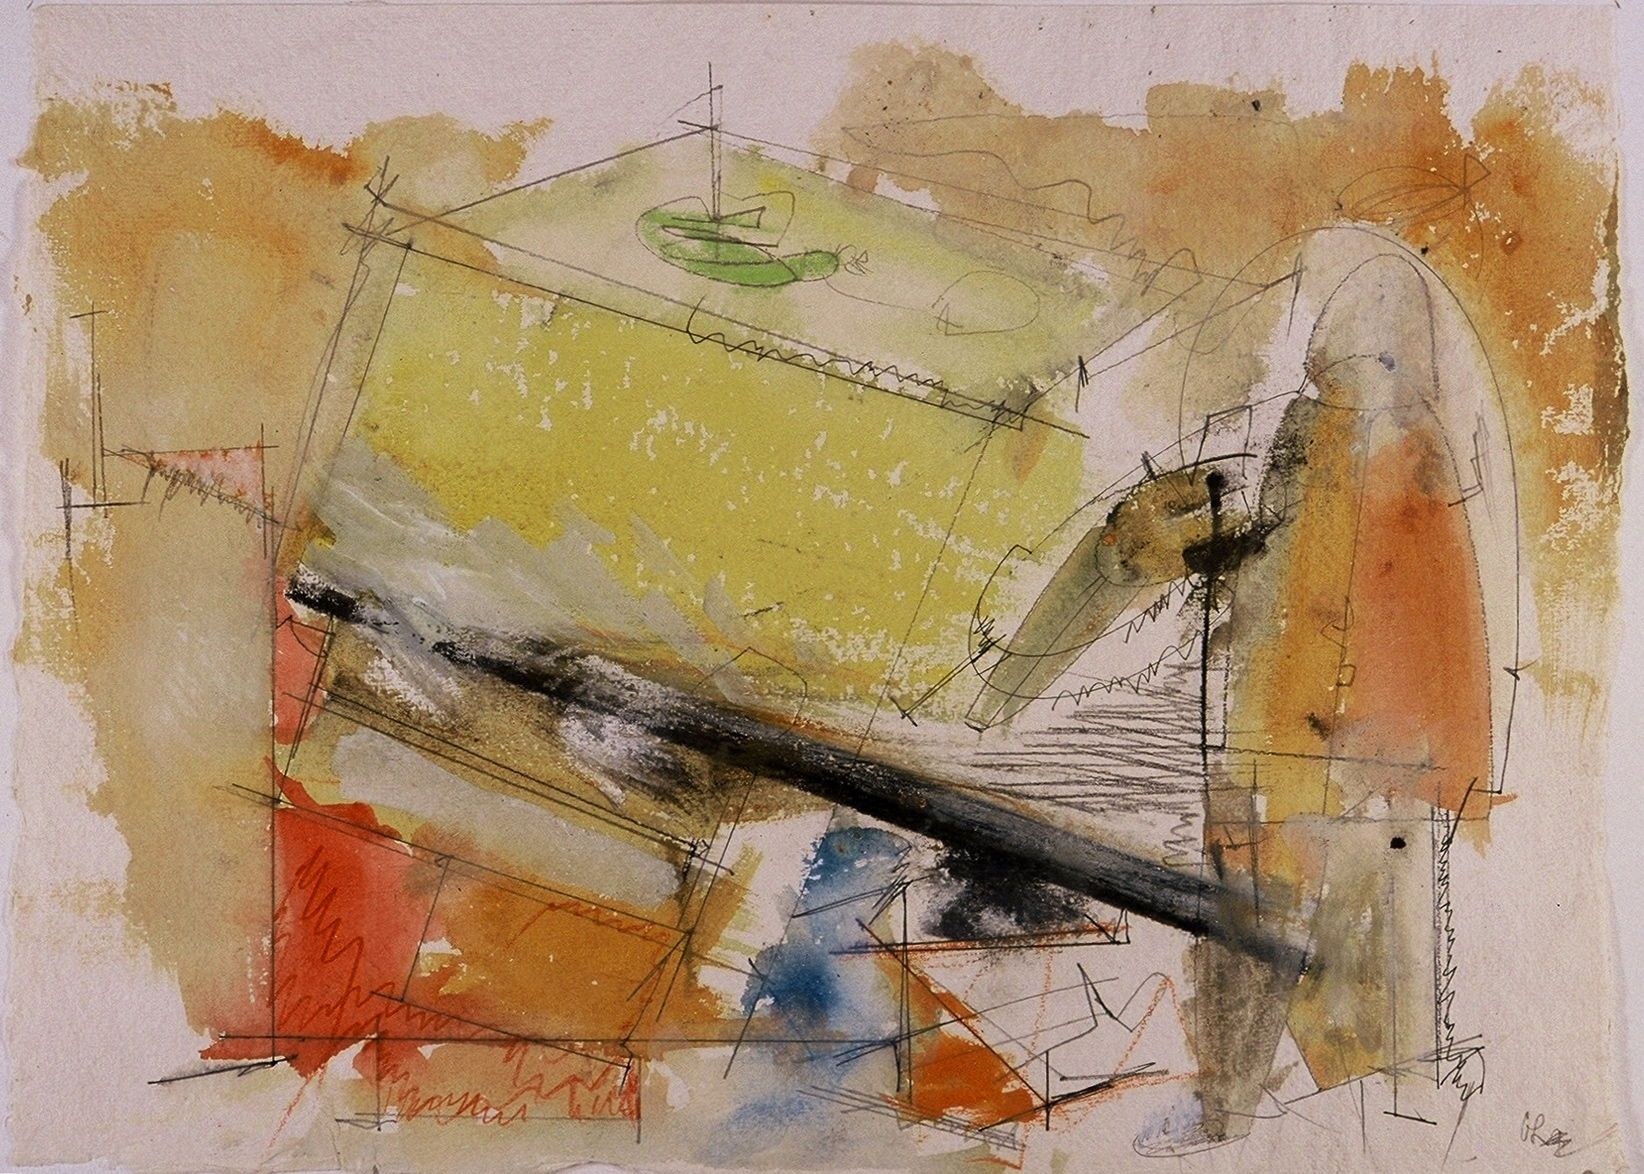 "Composition w SINKING STRUCTURE and FIGURE , a PAINTER 2005  ,  11 x 15"" ,     watercolor on Indian  watercolor paper"